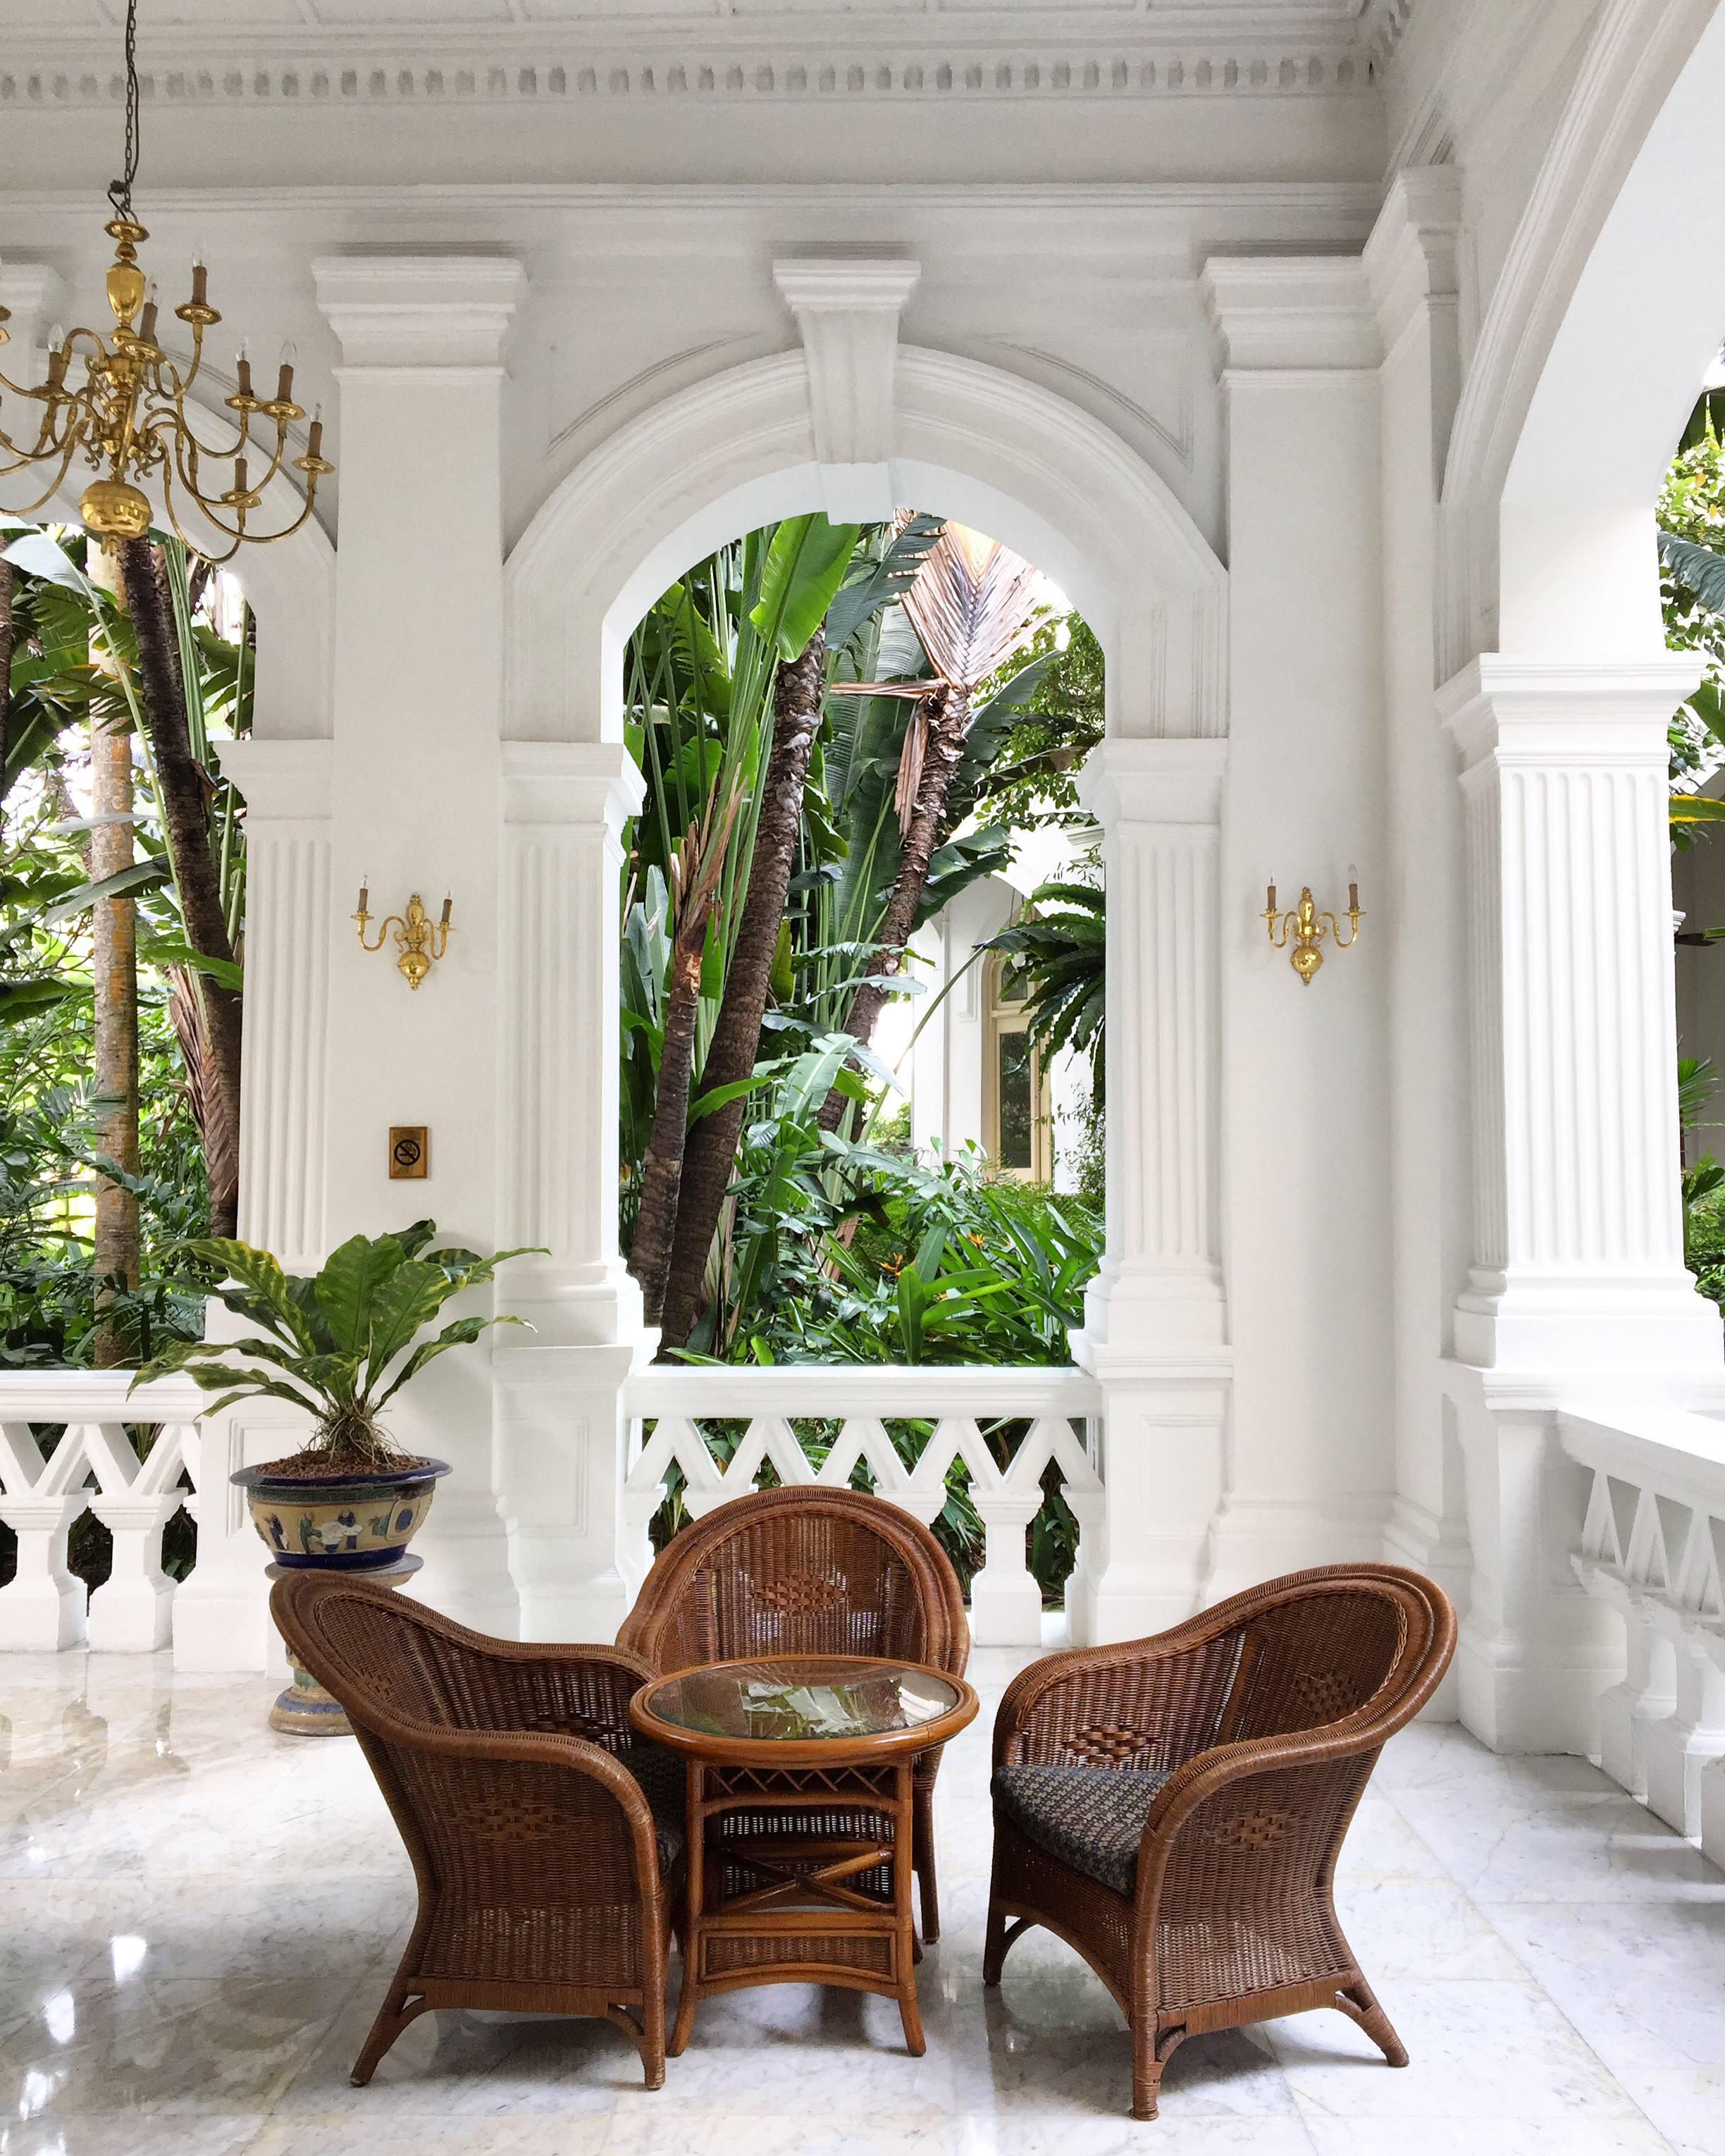 The Most Expensive Suite at Raffles Singapore (Architectural Digest)   Inimitable luxury and service at this grand hotel have long beckoned heads of state, film stars, and the Duke and Duchess of Cambridge